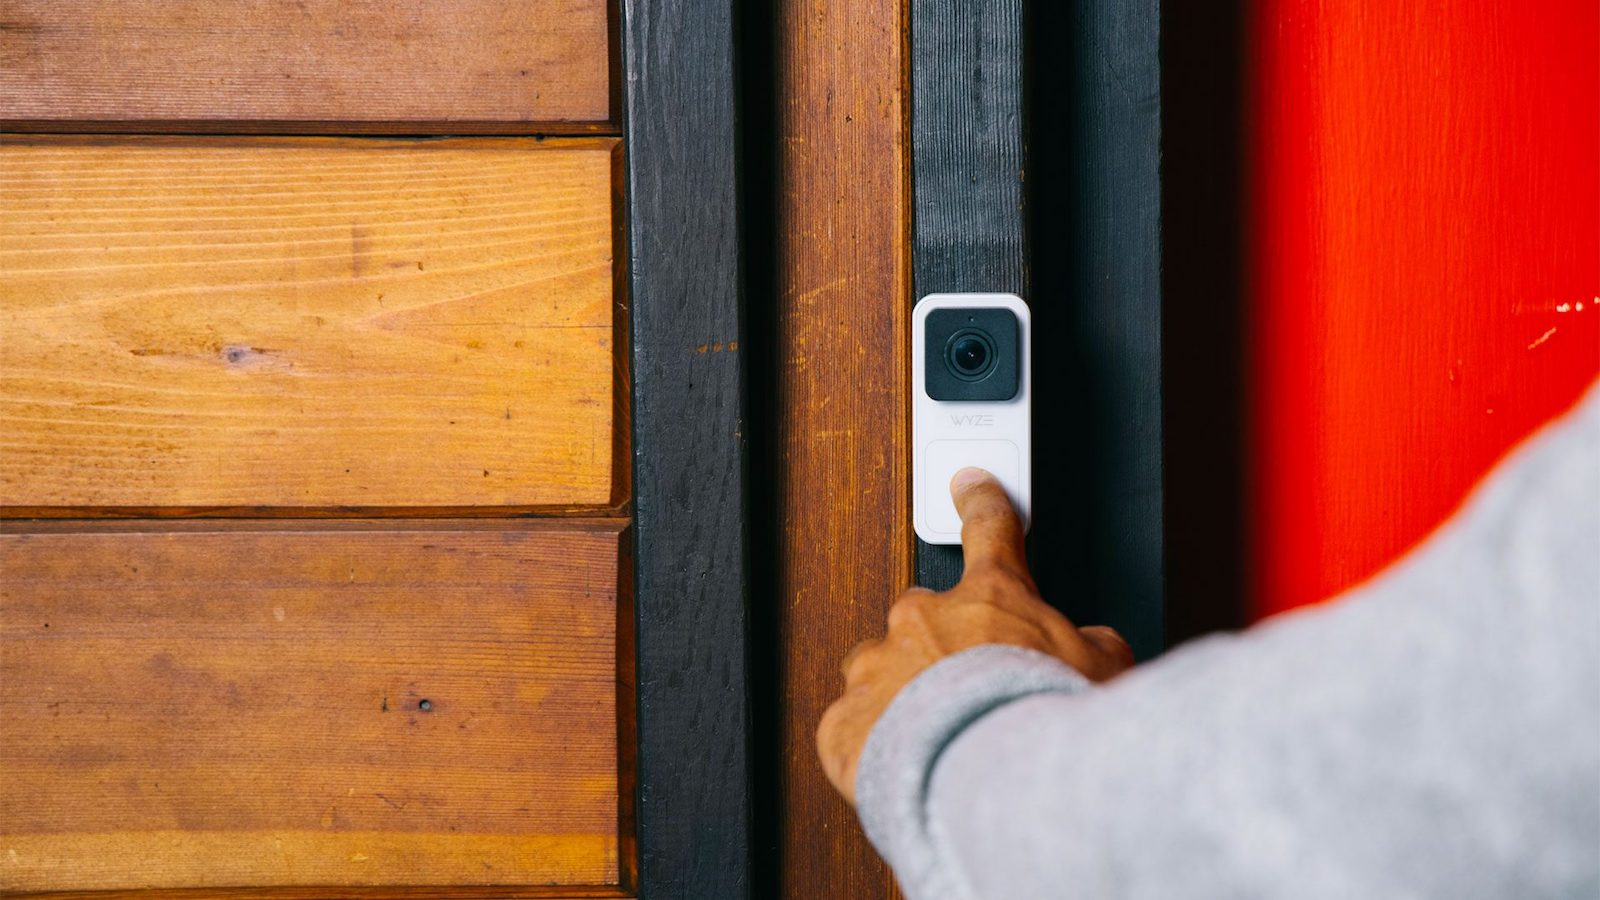 Wyze video doorbell lets you see visitors even when you are not at home